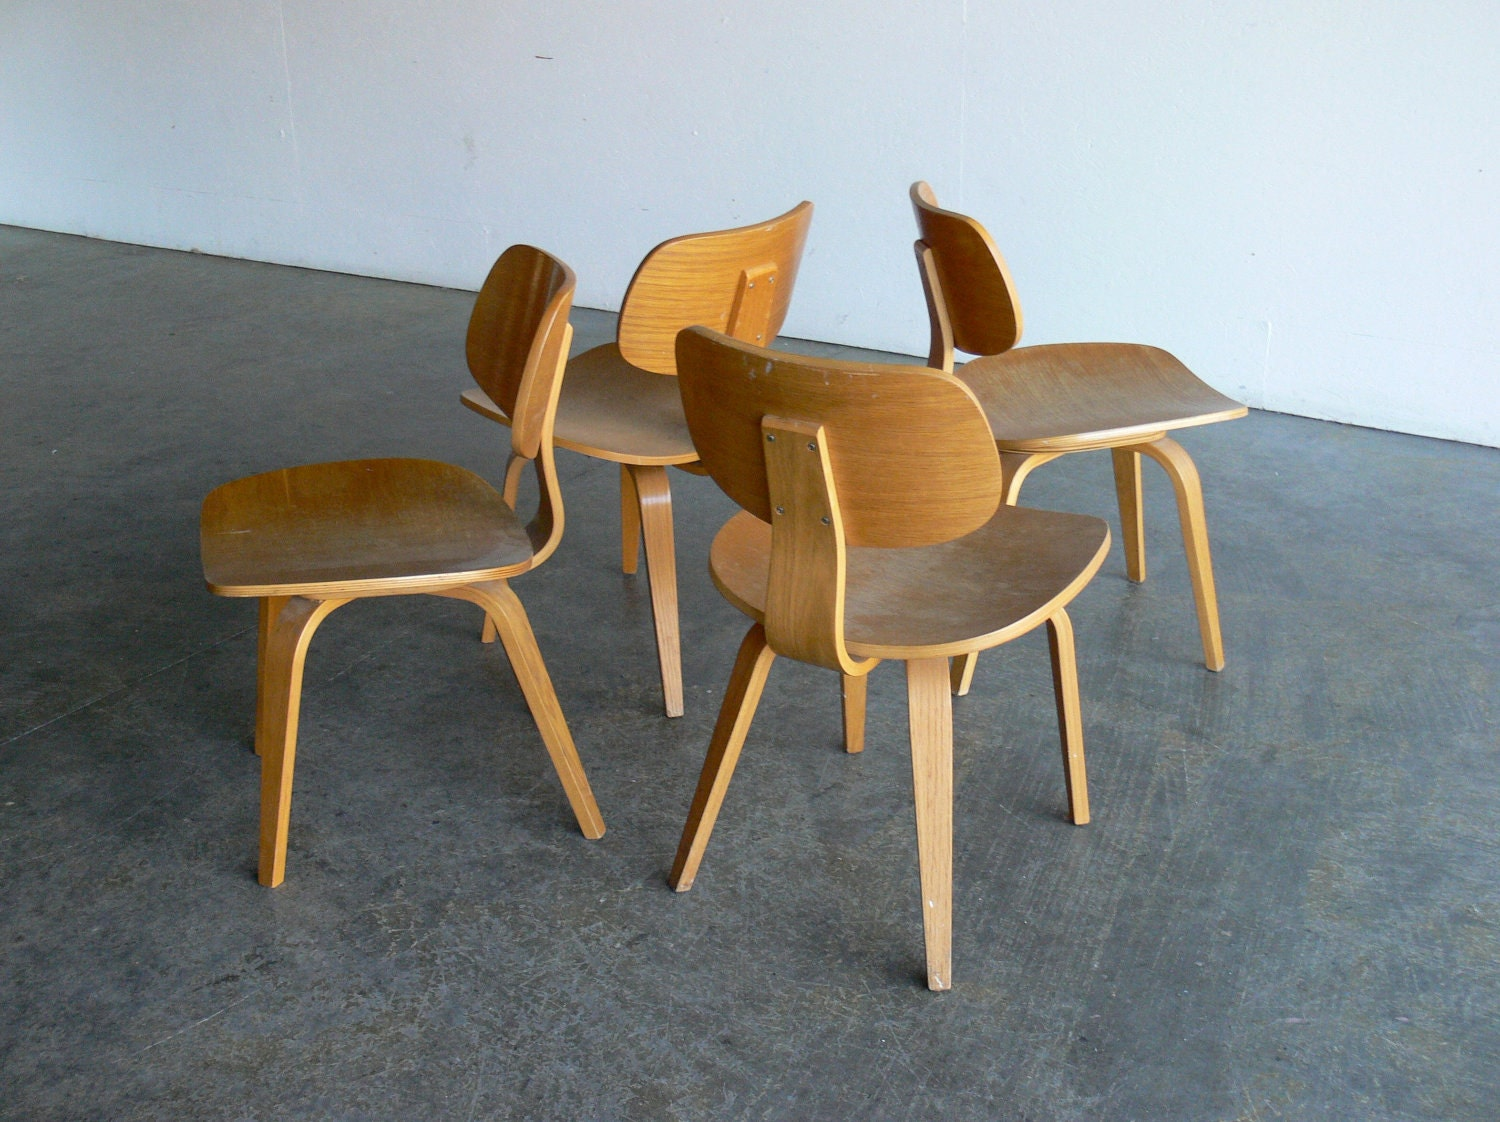 Vintage mid century modern thonet plywood chair set of 4 by comod